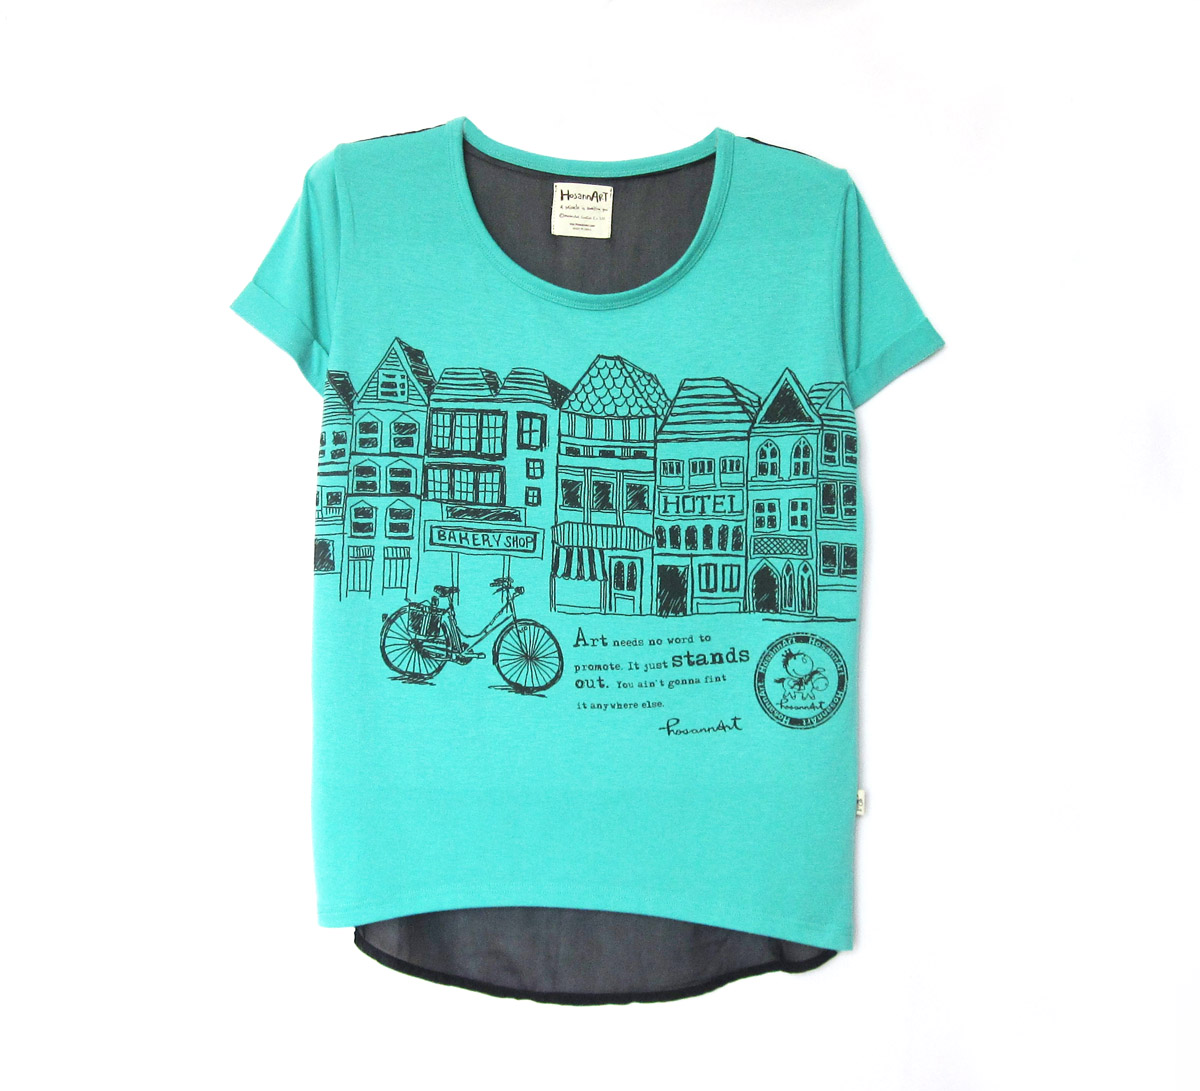 437f52870fa3 Get Quotations · Hong kong hosannart in 2015 on the back of the spring and  summer new women chiffon